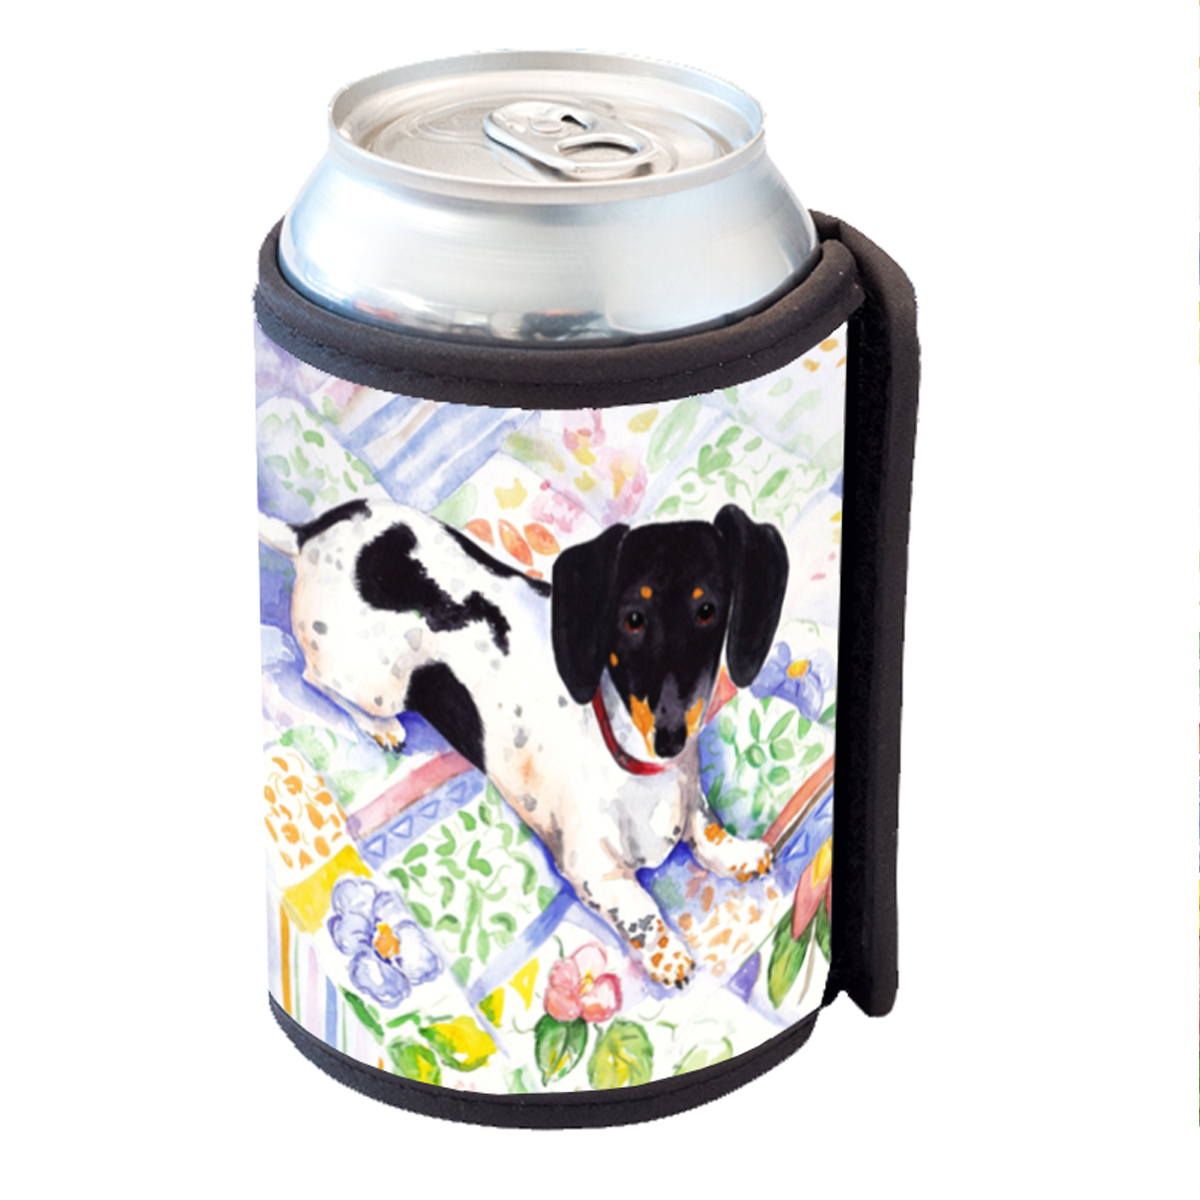 KuzmarK Insulated Drink Can Cooler Hugger - Tricolor Miniature Dachshund Art by Denise Every